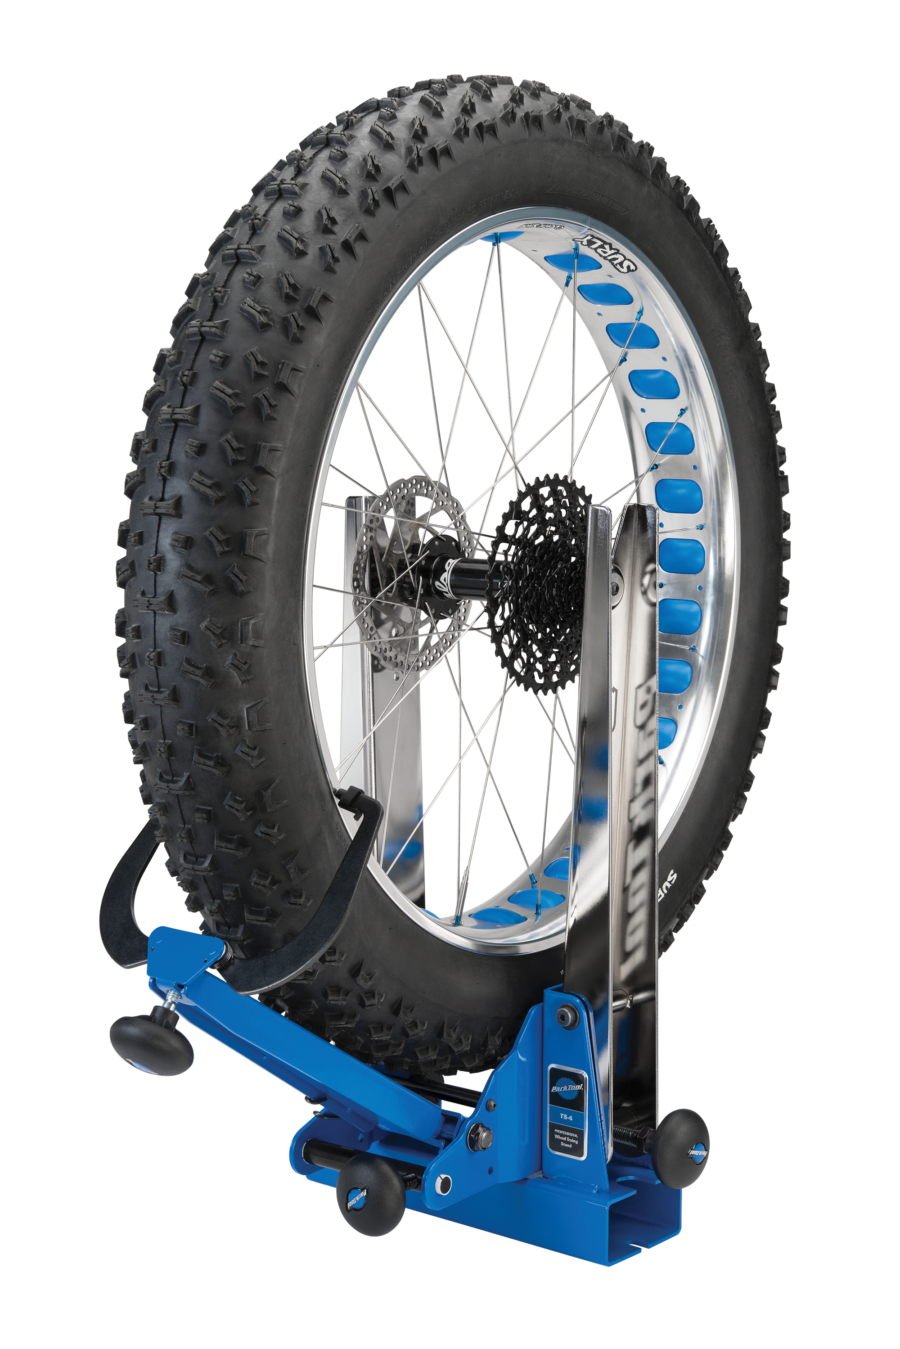 The Park Tool TS-4 Professional Wheel Truing Stand holding fat tire, enlarged